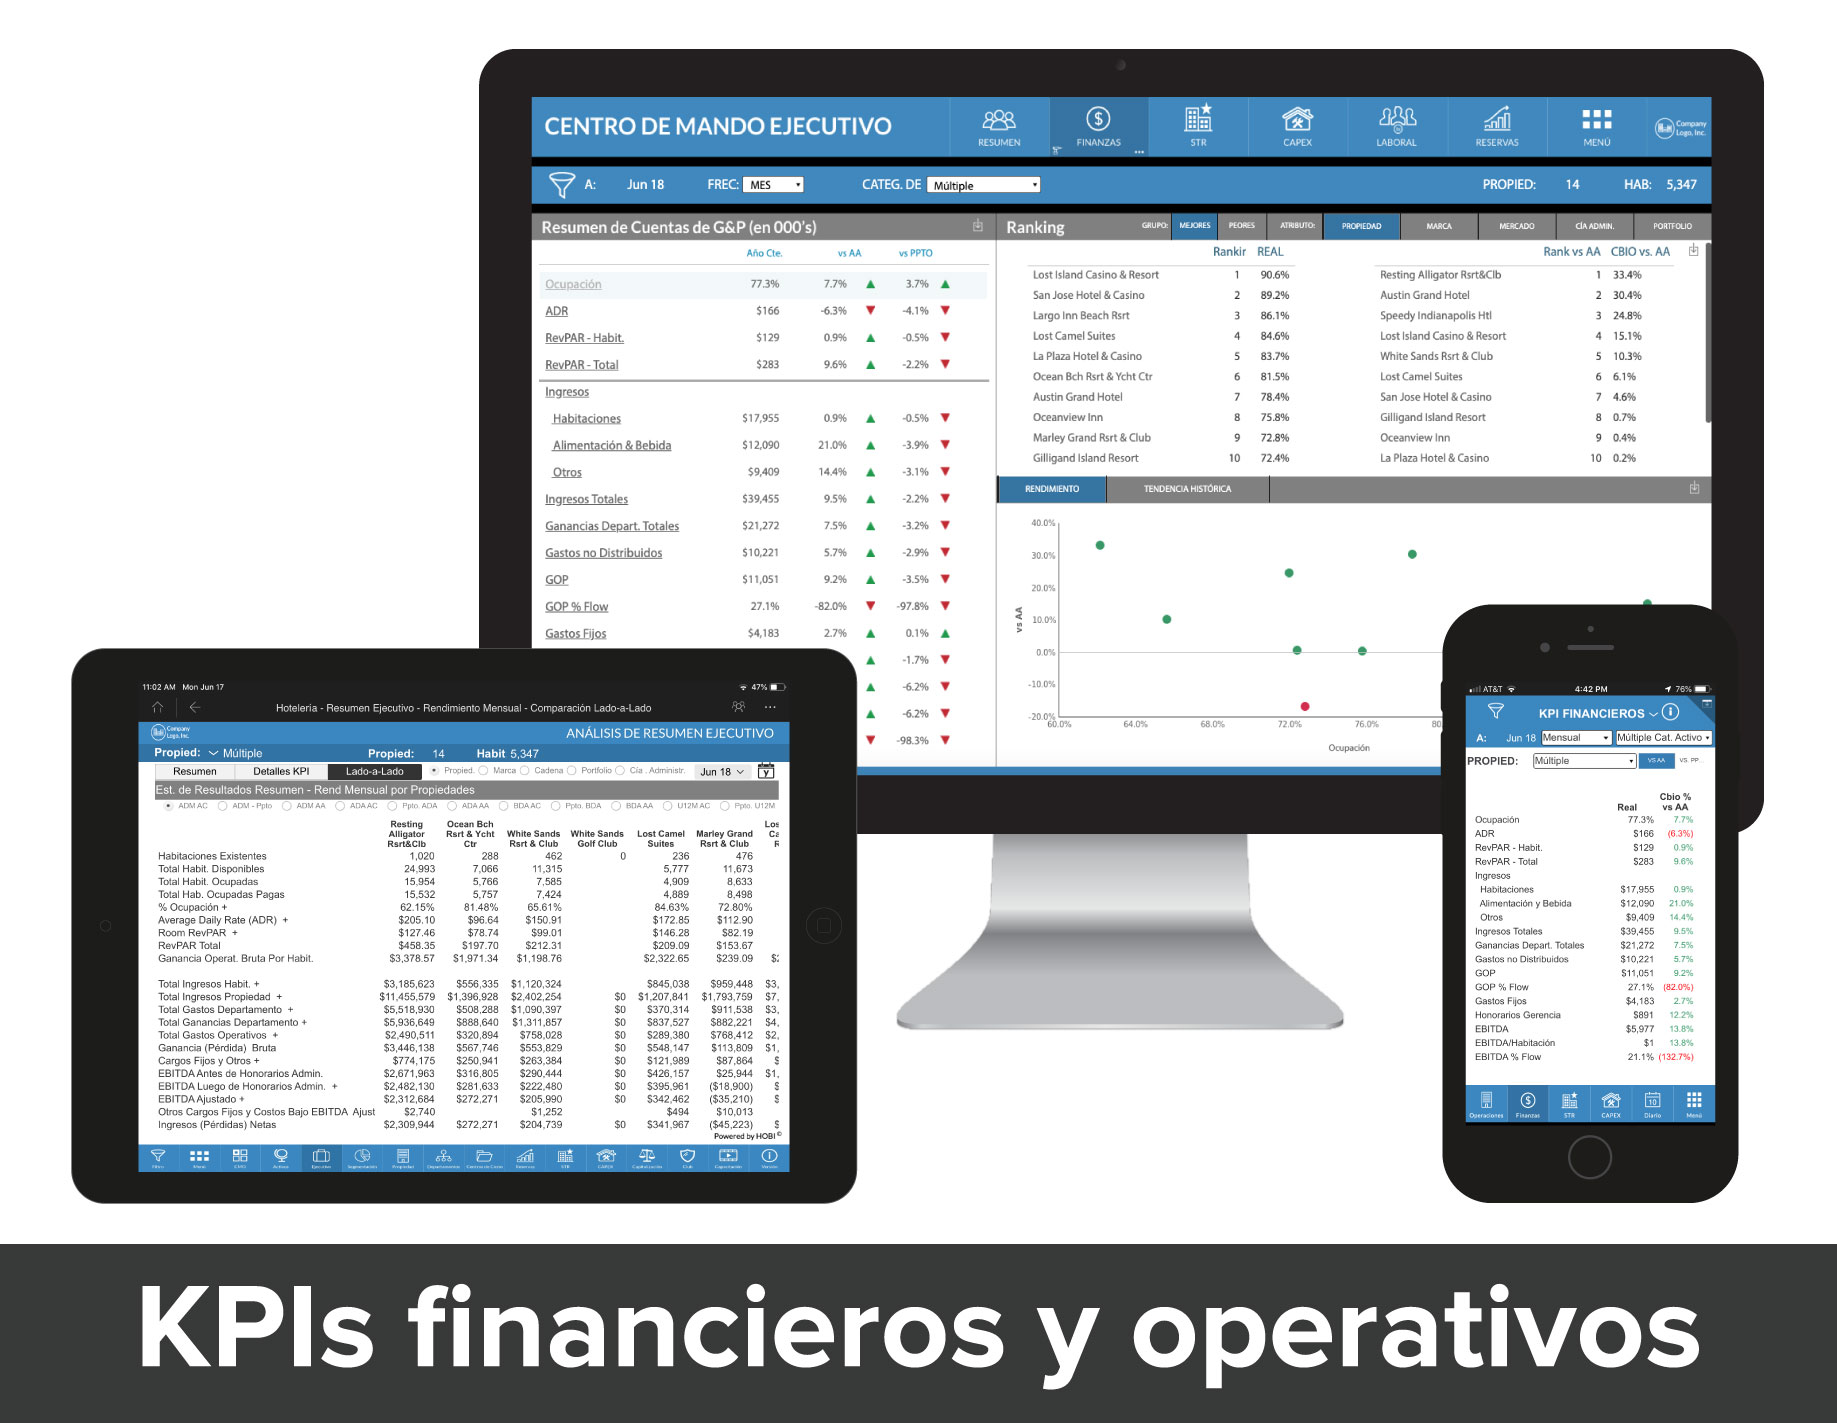 Gallery_5_Financial-&-Operational-KPIs_SPA.jpg